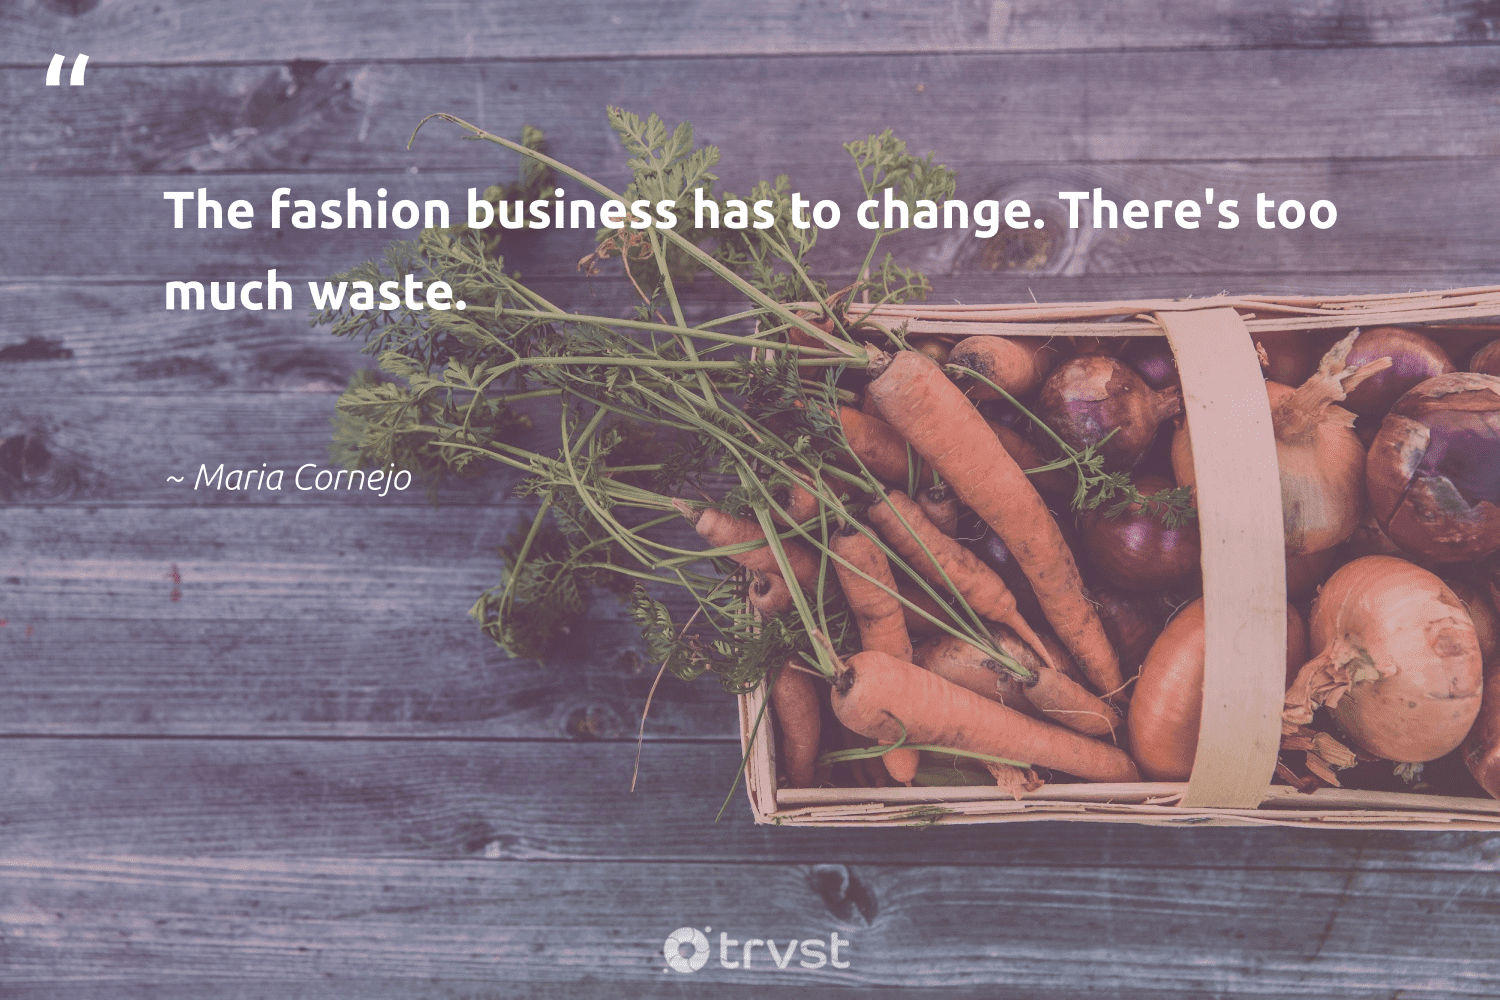 """""""The fashion business has to change. There's too much waste.""""  - Maria Cornejo #trvst #quotes #waste #fashion #greenliving #ecoconscious #green #gogreen #bethechange #socialchange #sustainability #takeaction"""